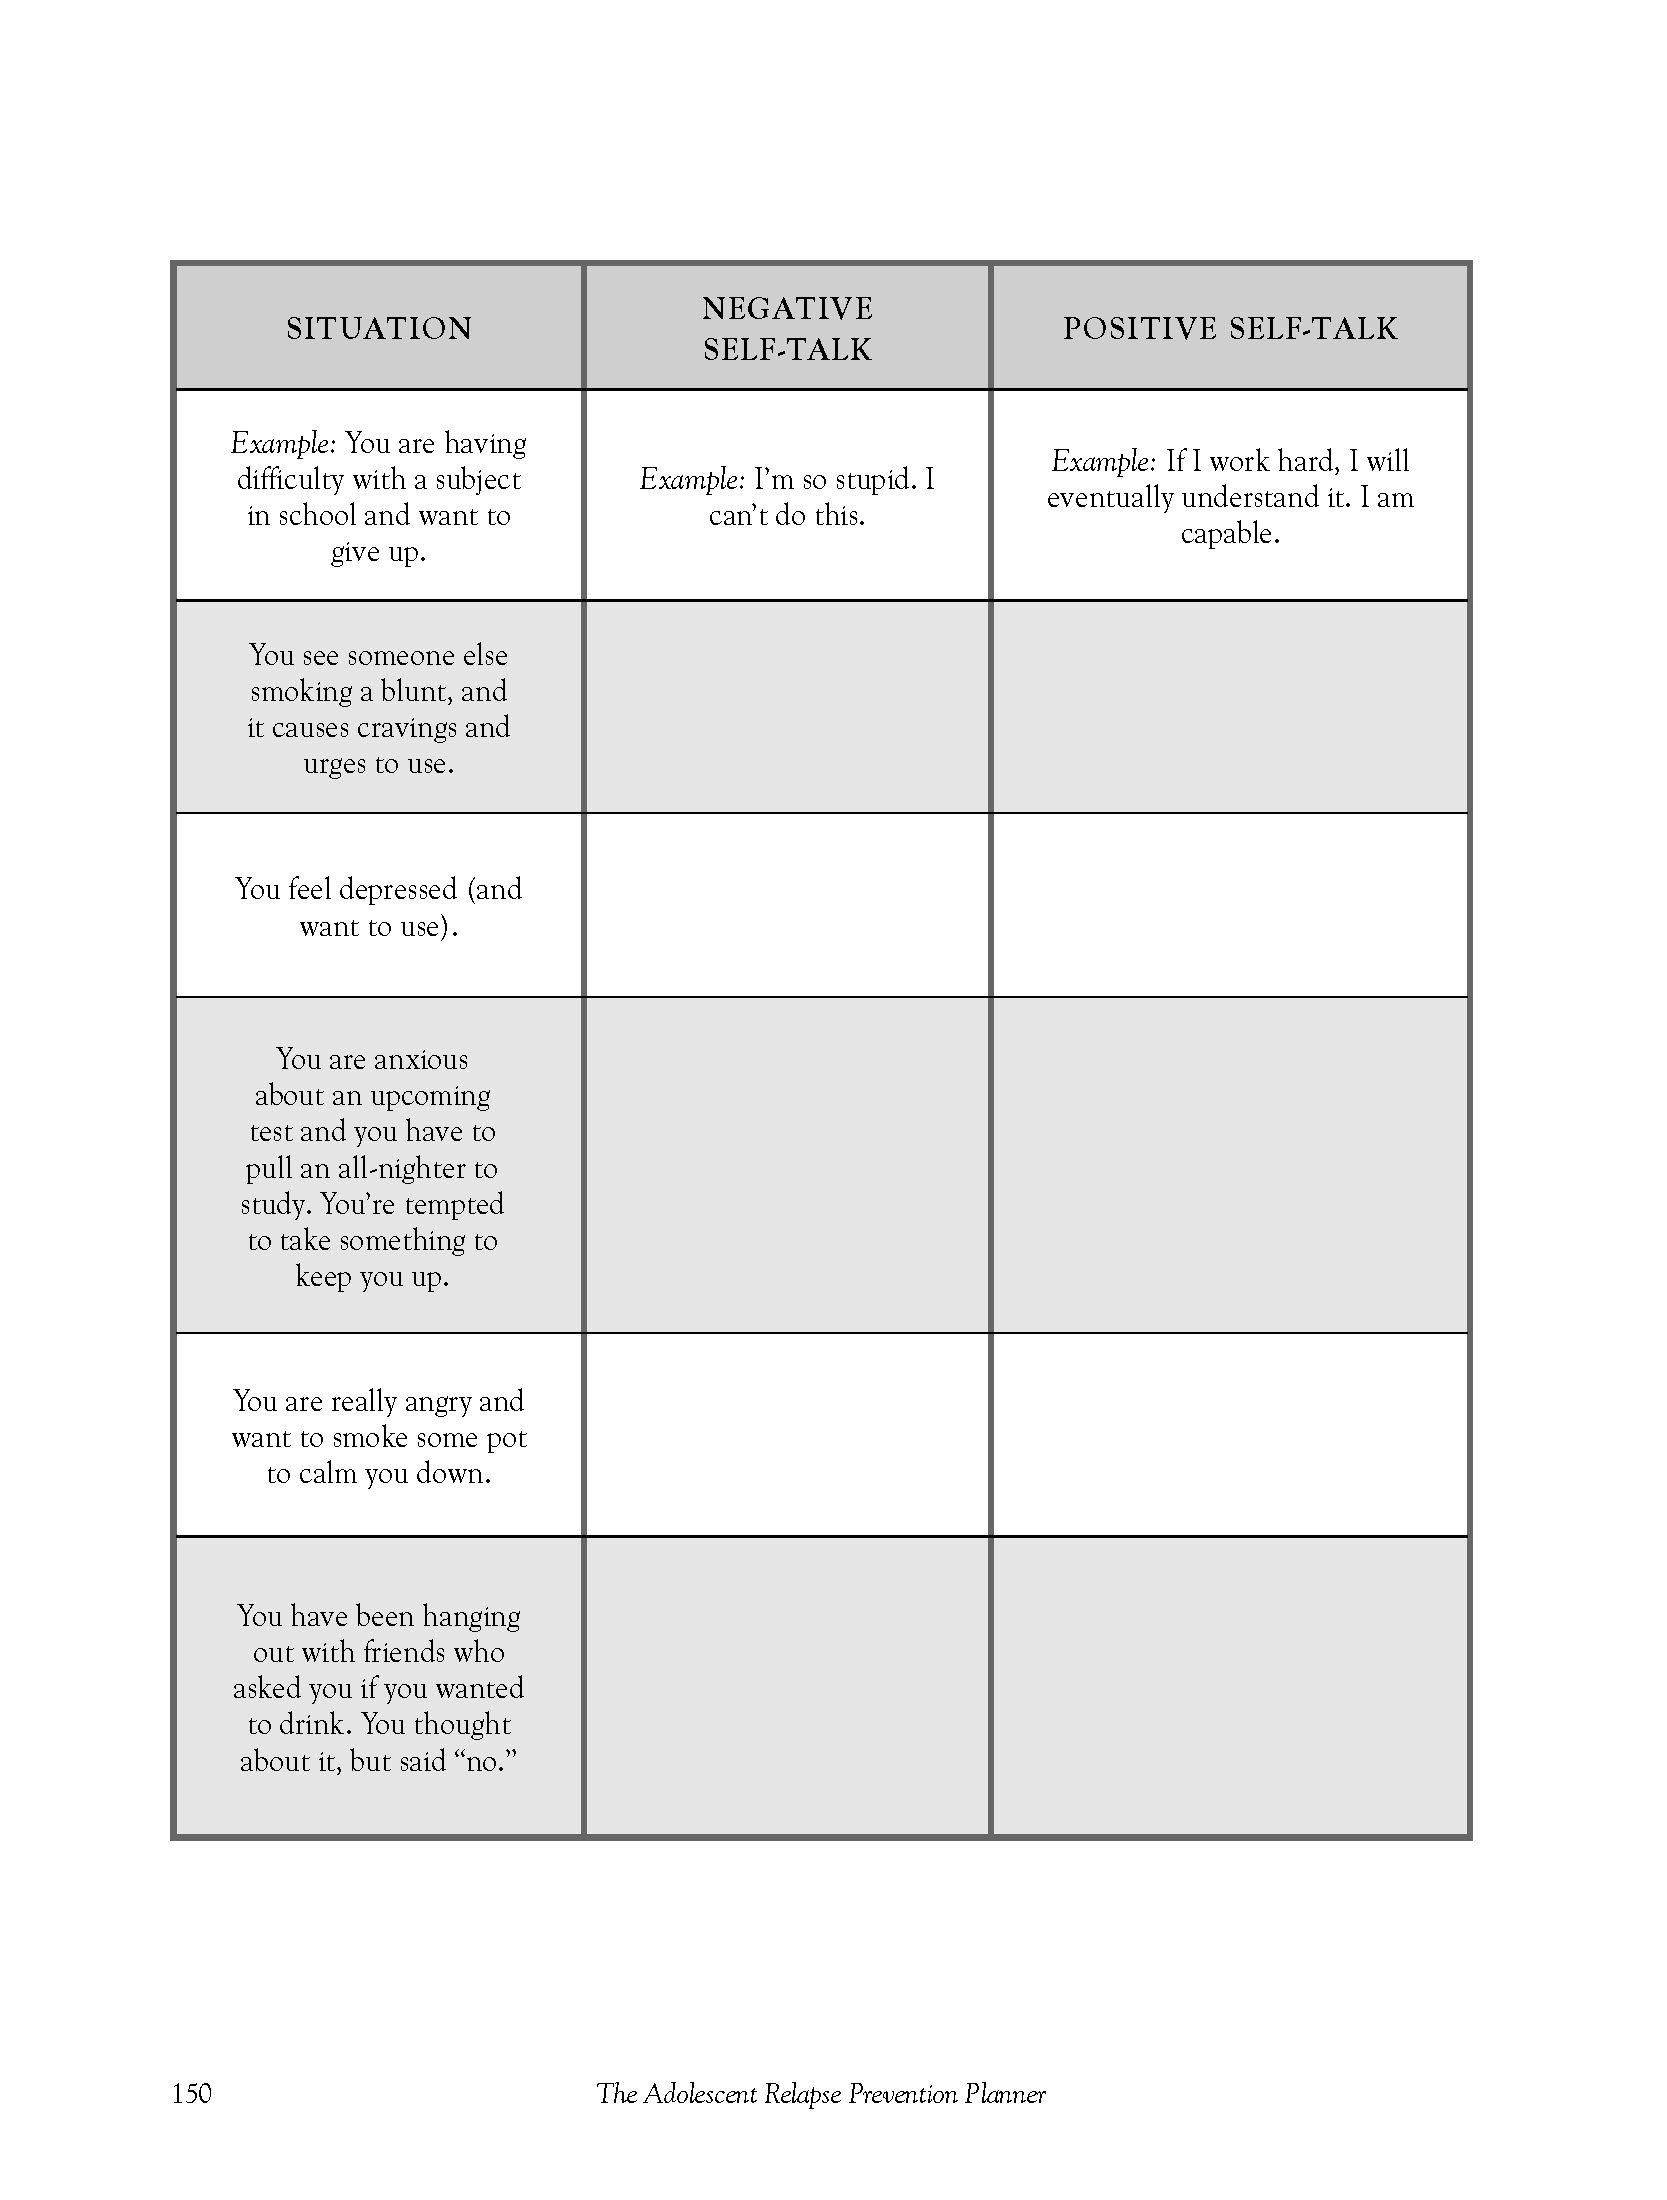 Worksheets Positive Coping Skills Worksheets a multi use exercise worksheet on self talking taken from the adolescent relapse prevention planner by jennifer bruha ph turn negat